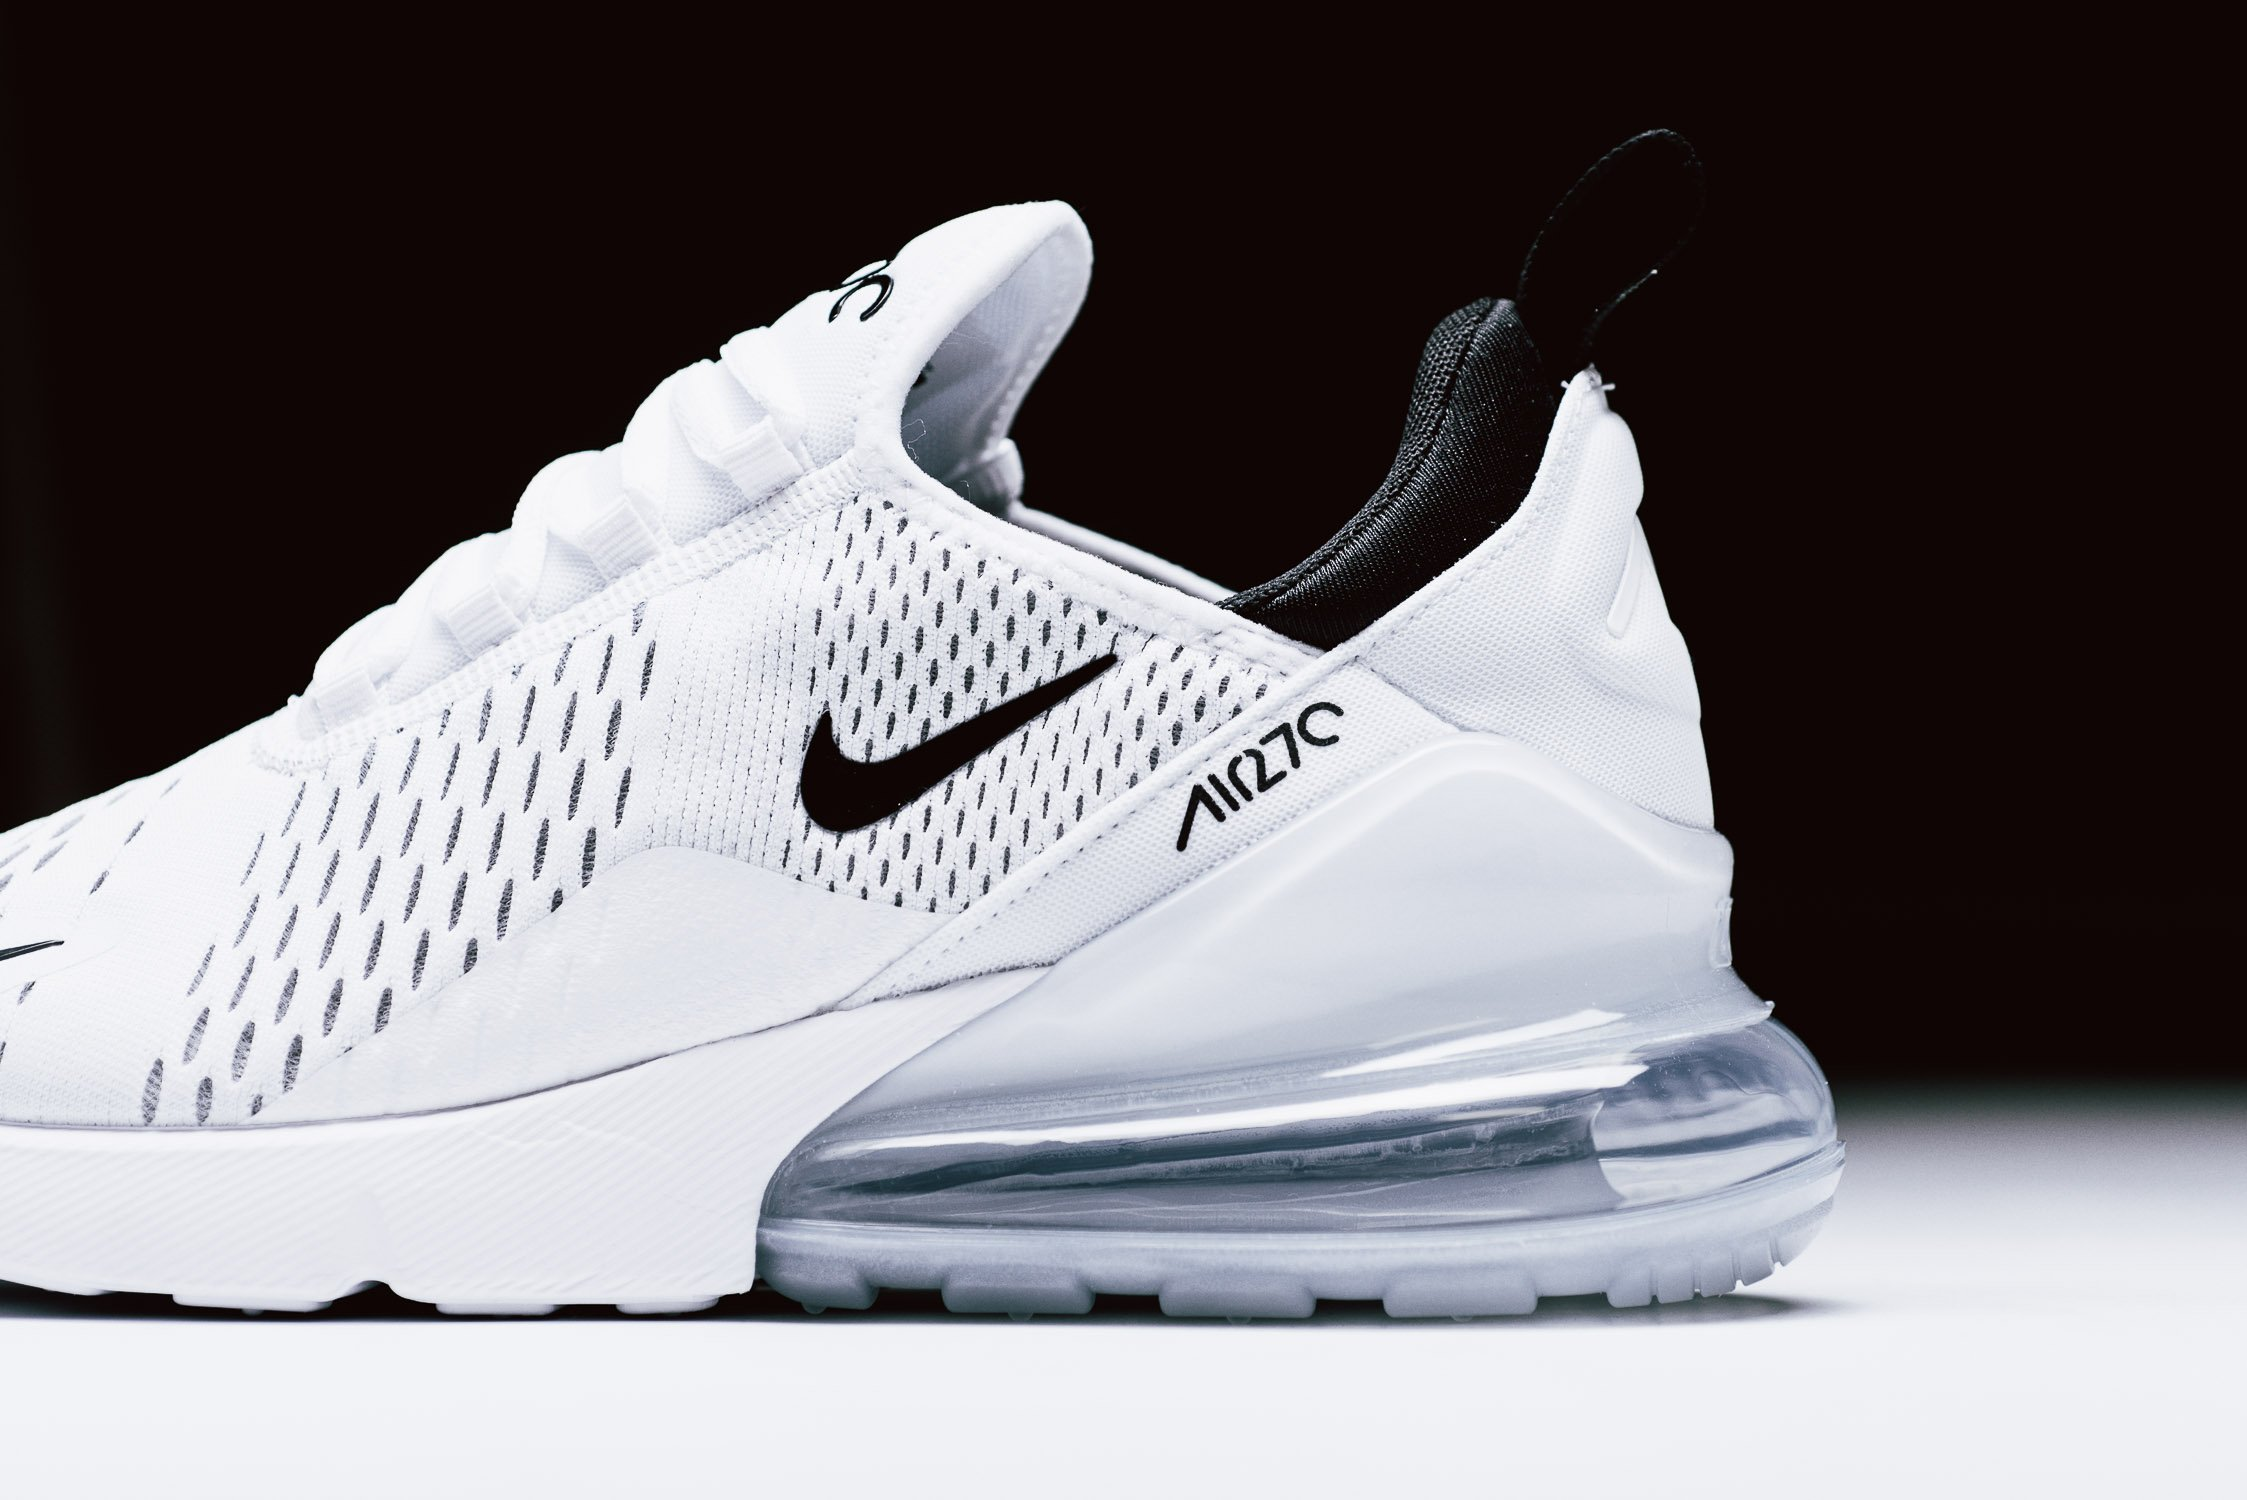 quality design 45189 e6be9 Nike Air Max 270 White Black   AH8050-100